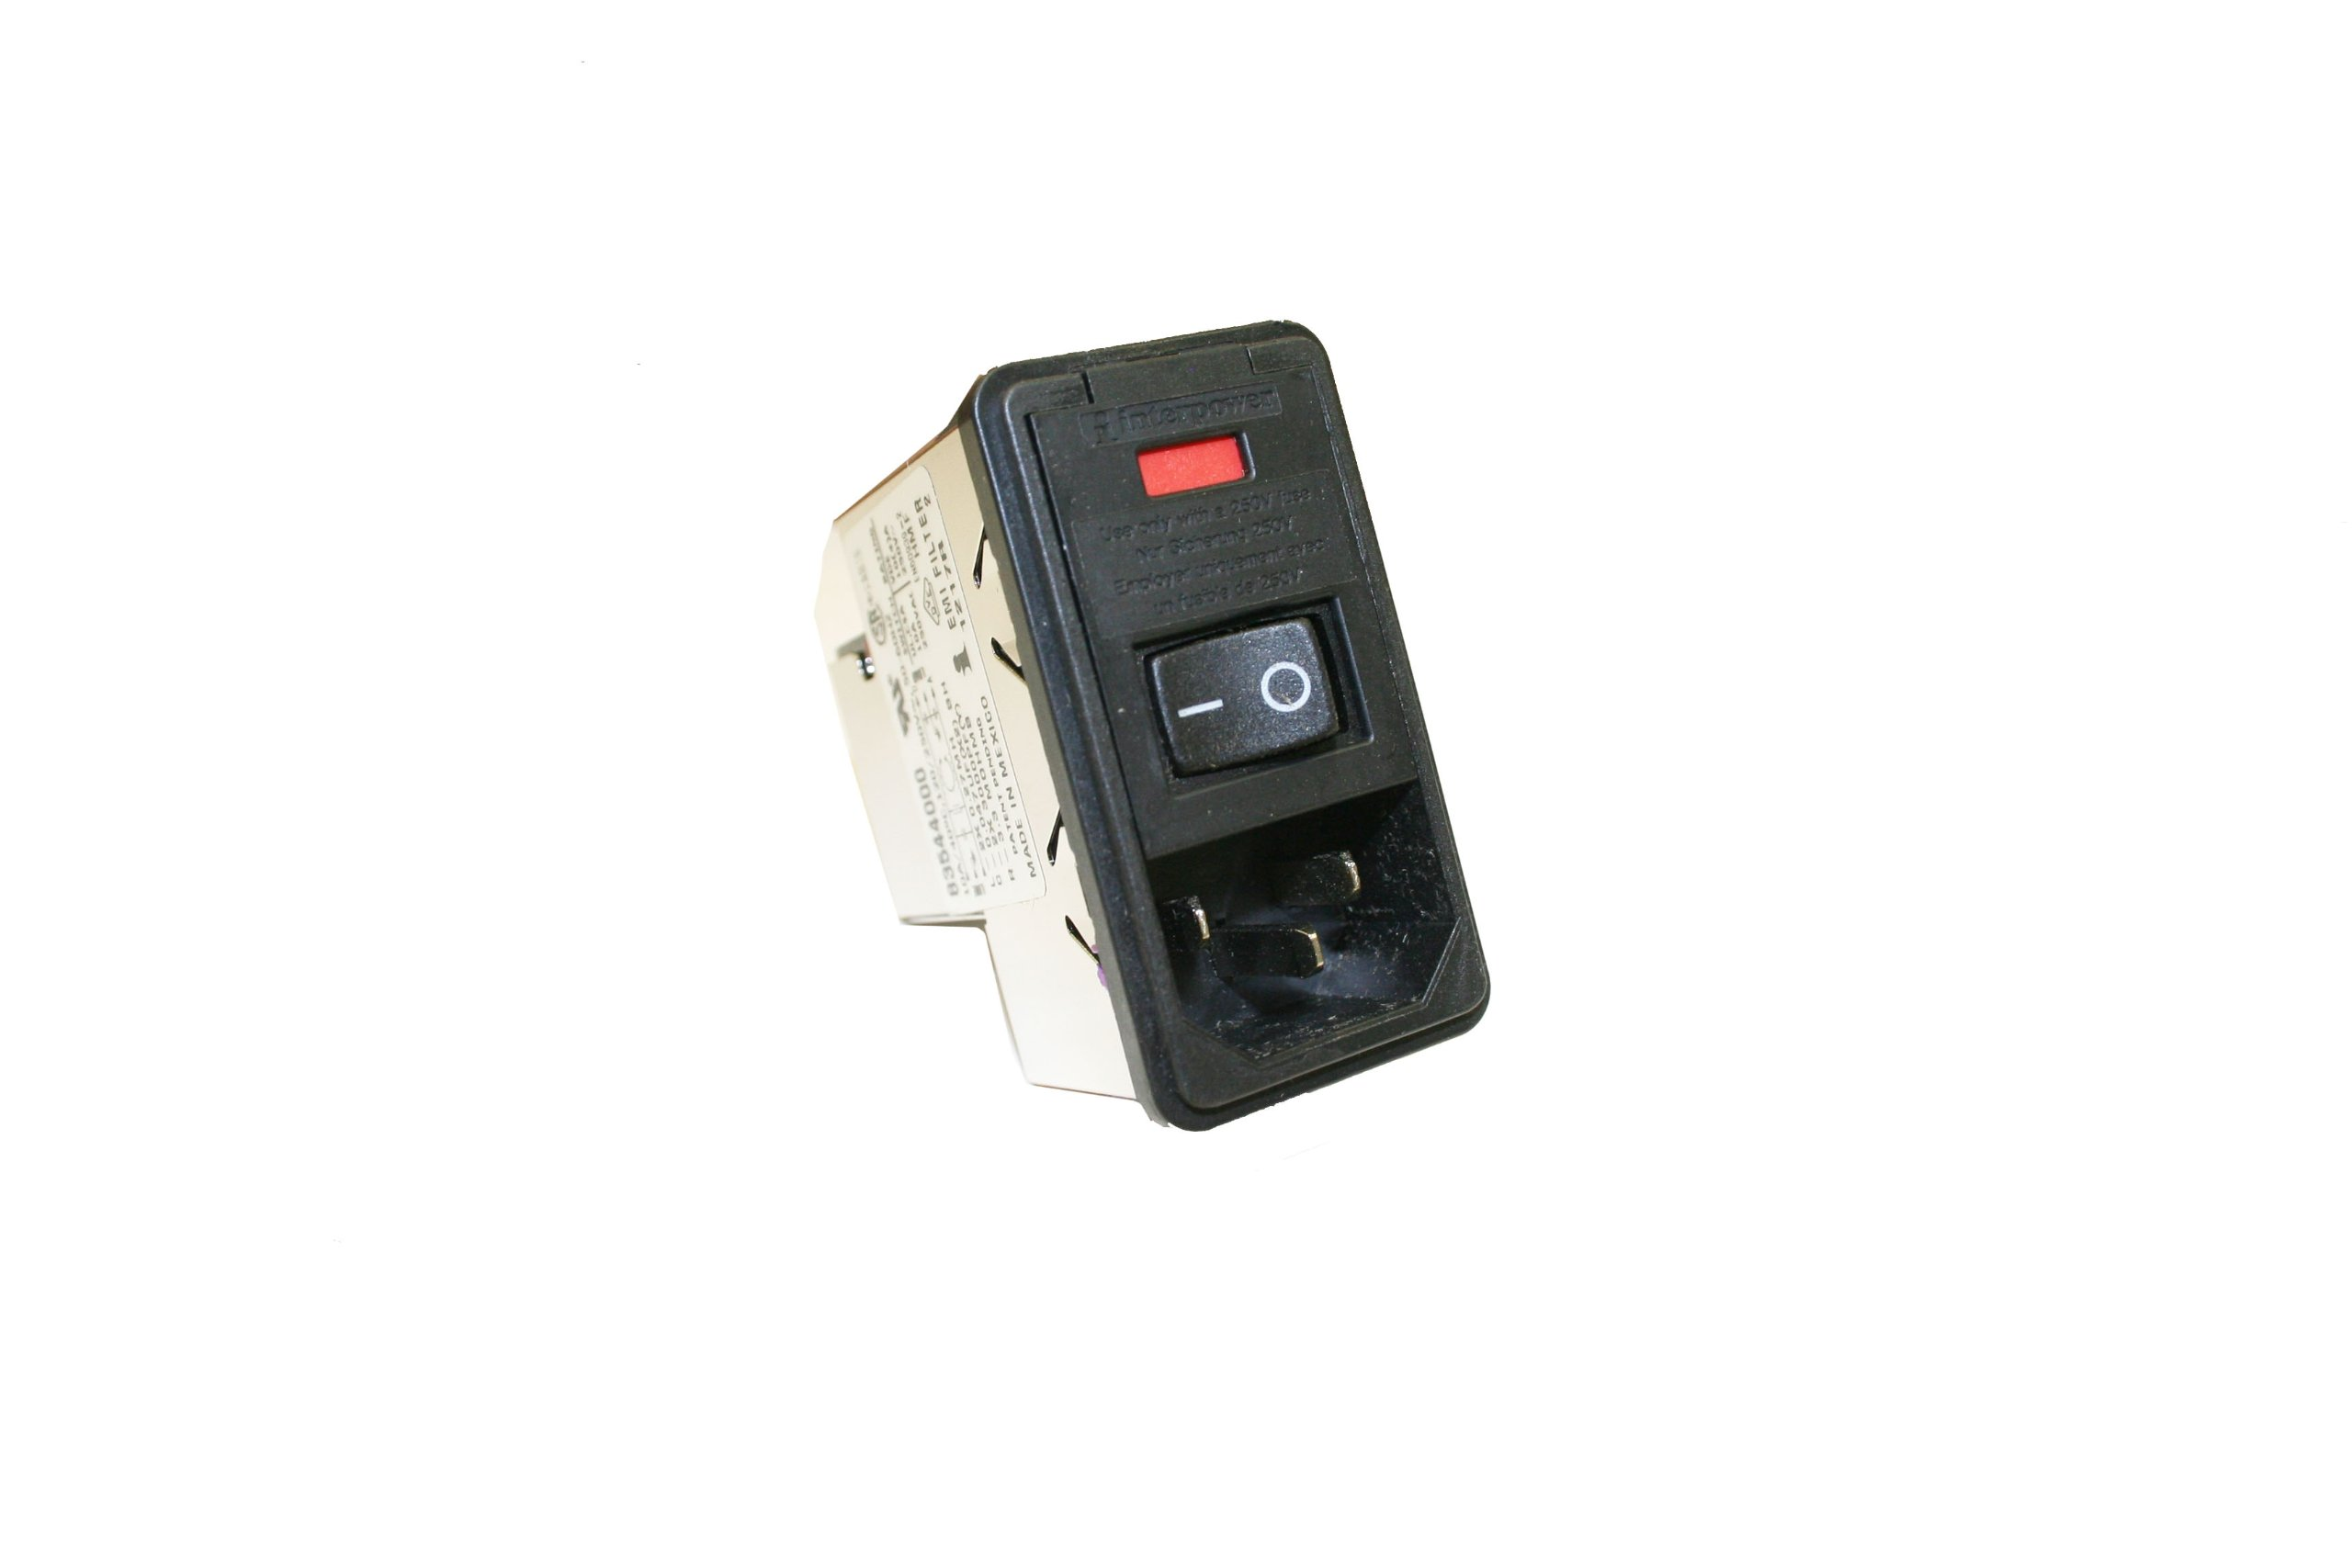 Interpower 83544000 Four Function Filtered Snap-In Module, C14 Inlet, Switch, Single Fused, Filter, 0.08-2mm Panel Thickness, 10A Current Rating, 120/250VAC Voltage Rating